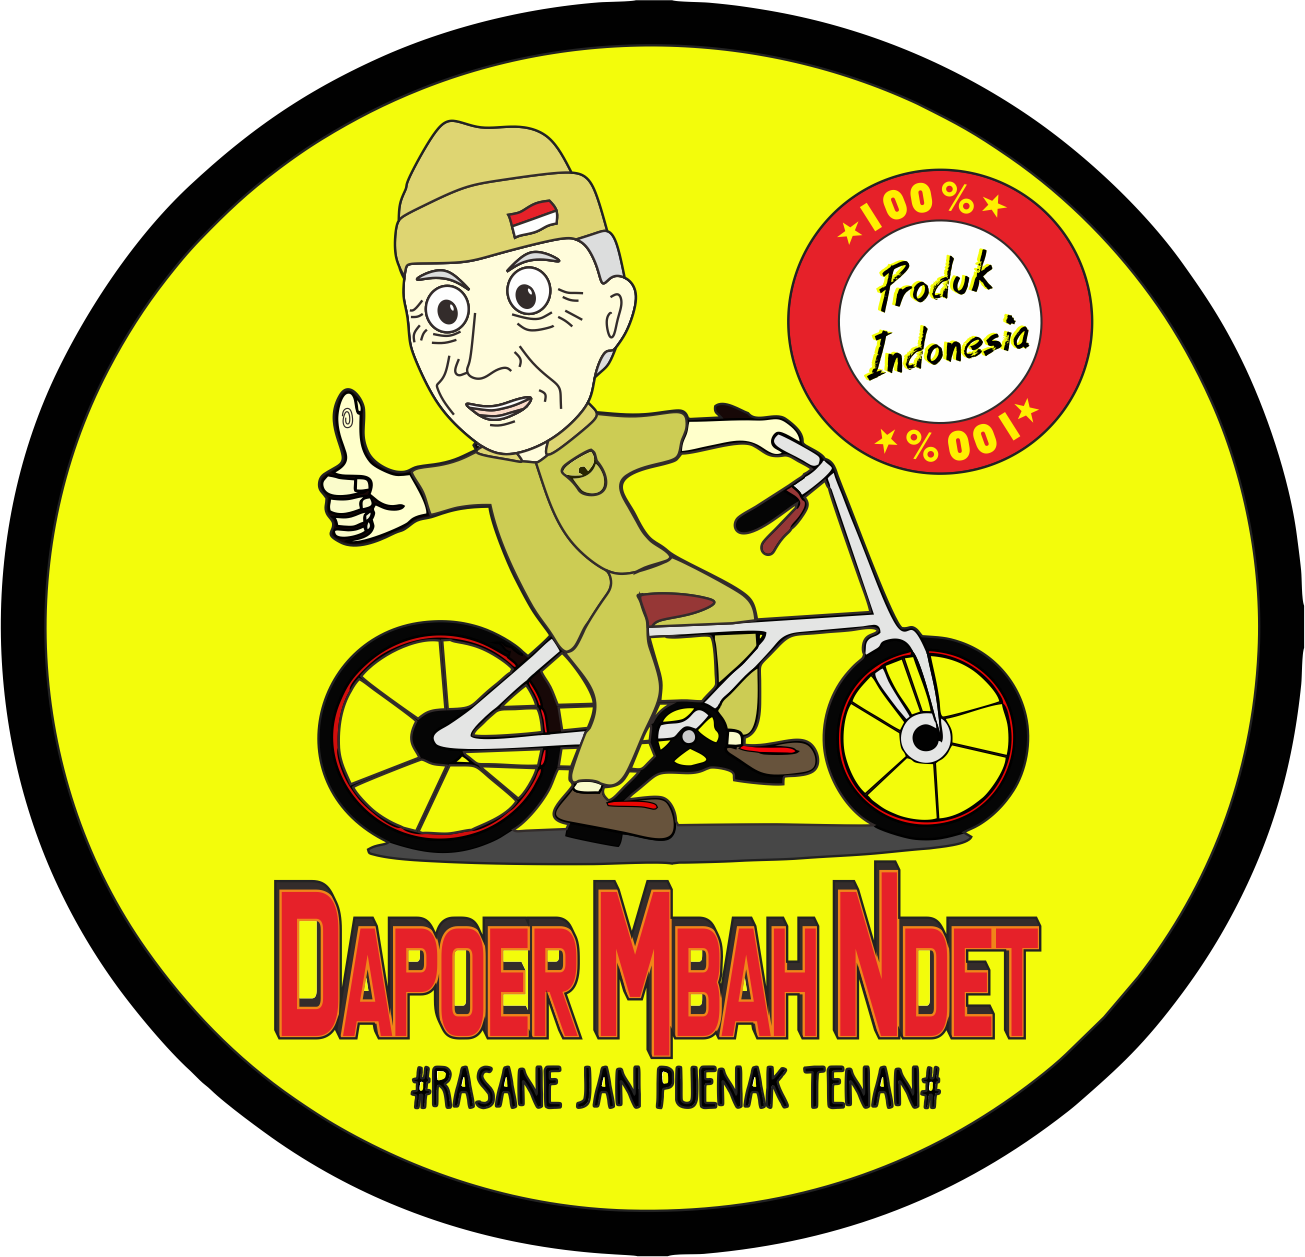 mbah ndet food & beverage